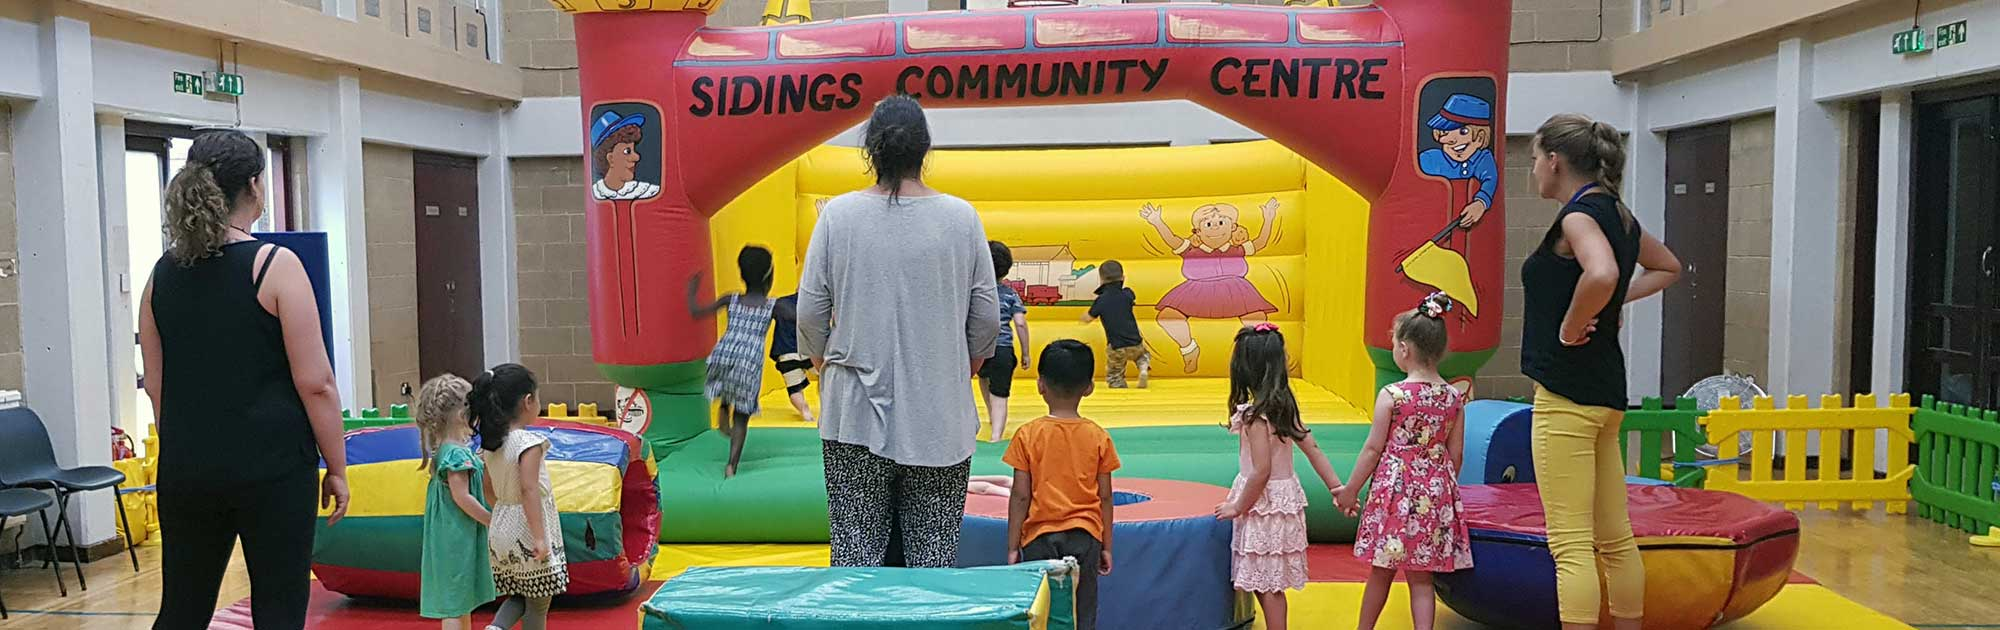 Sidings Early Years Centre Services (0-4 years)